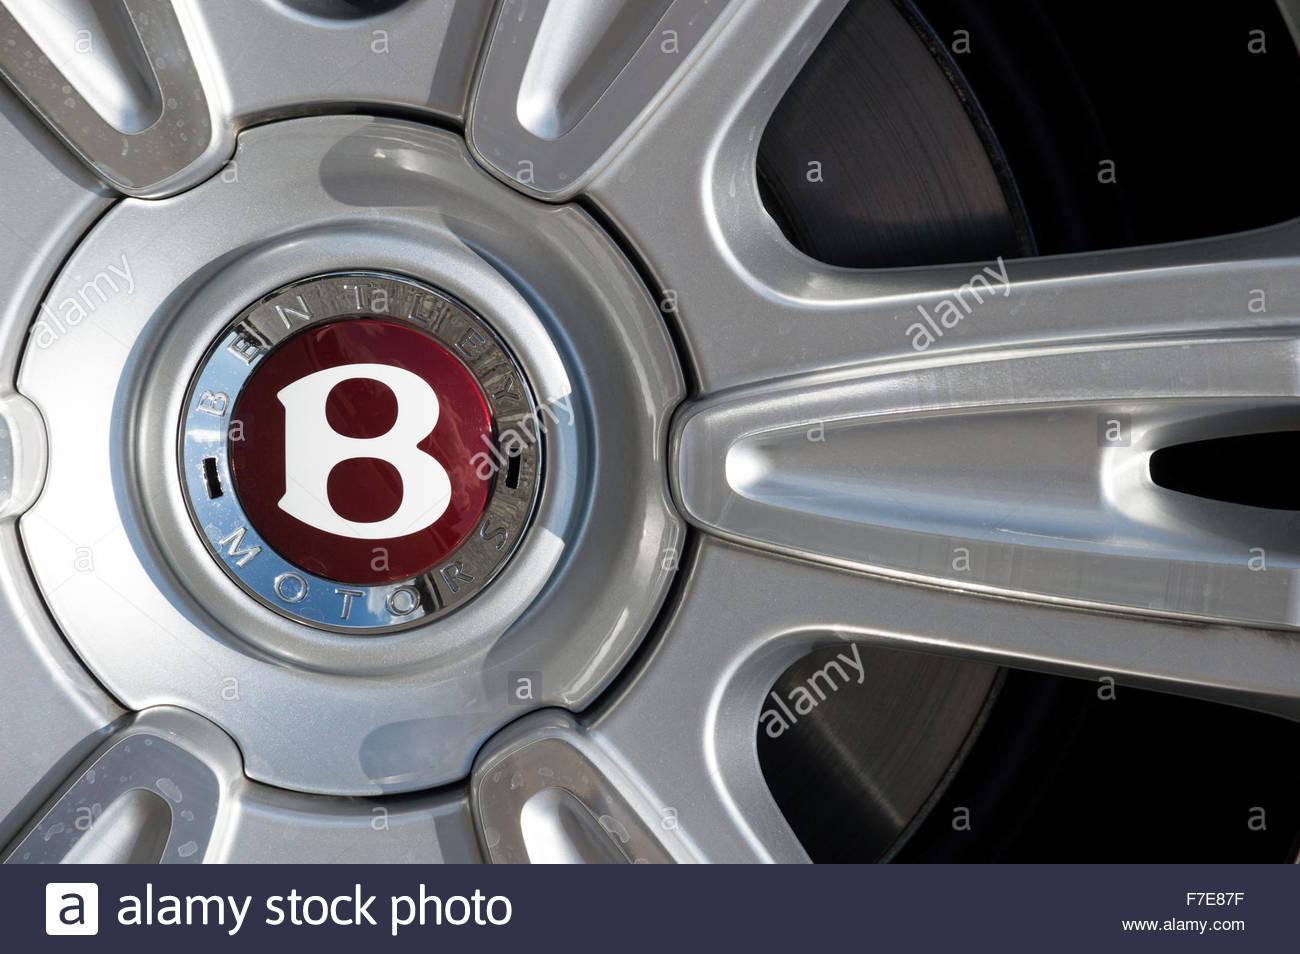 Close-up images of a Bentley Motors alloy wheel hub badge - Stock Image